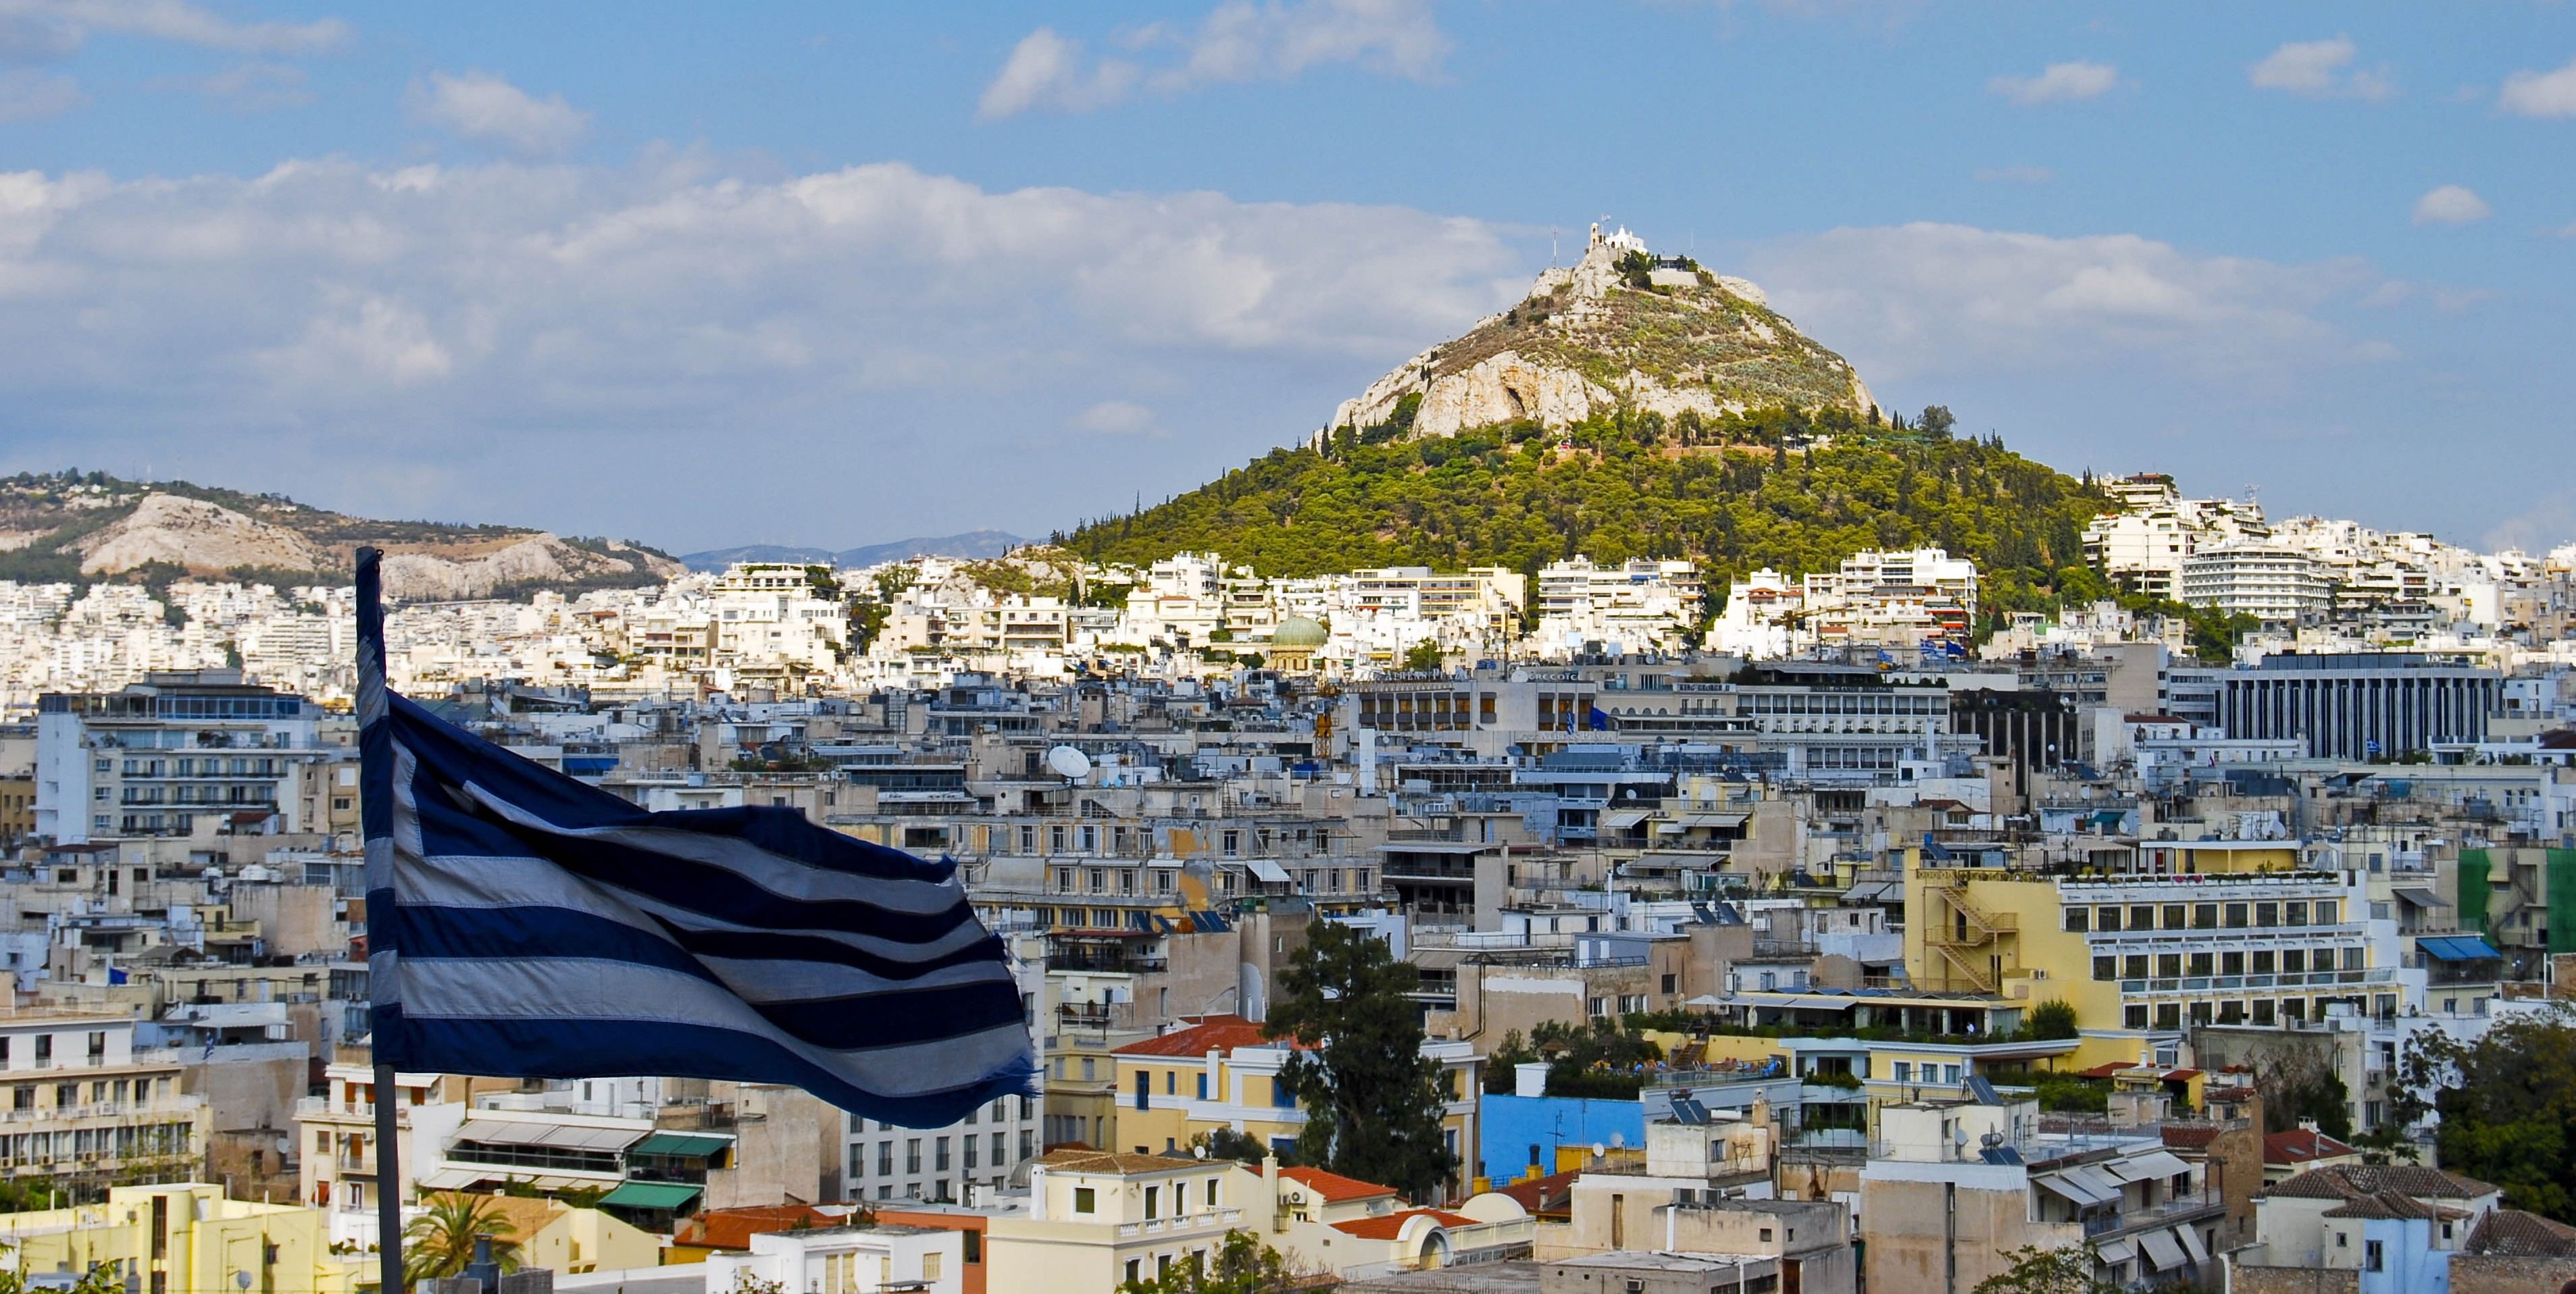 Alexandroupolis Greece  city photos gallery : Greece approves 2013 austerity budget | The Sofia Globe